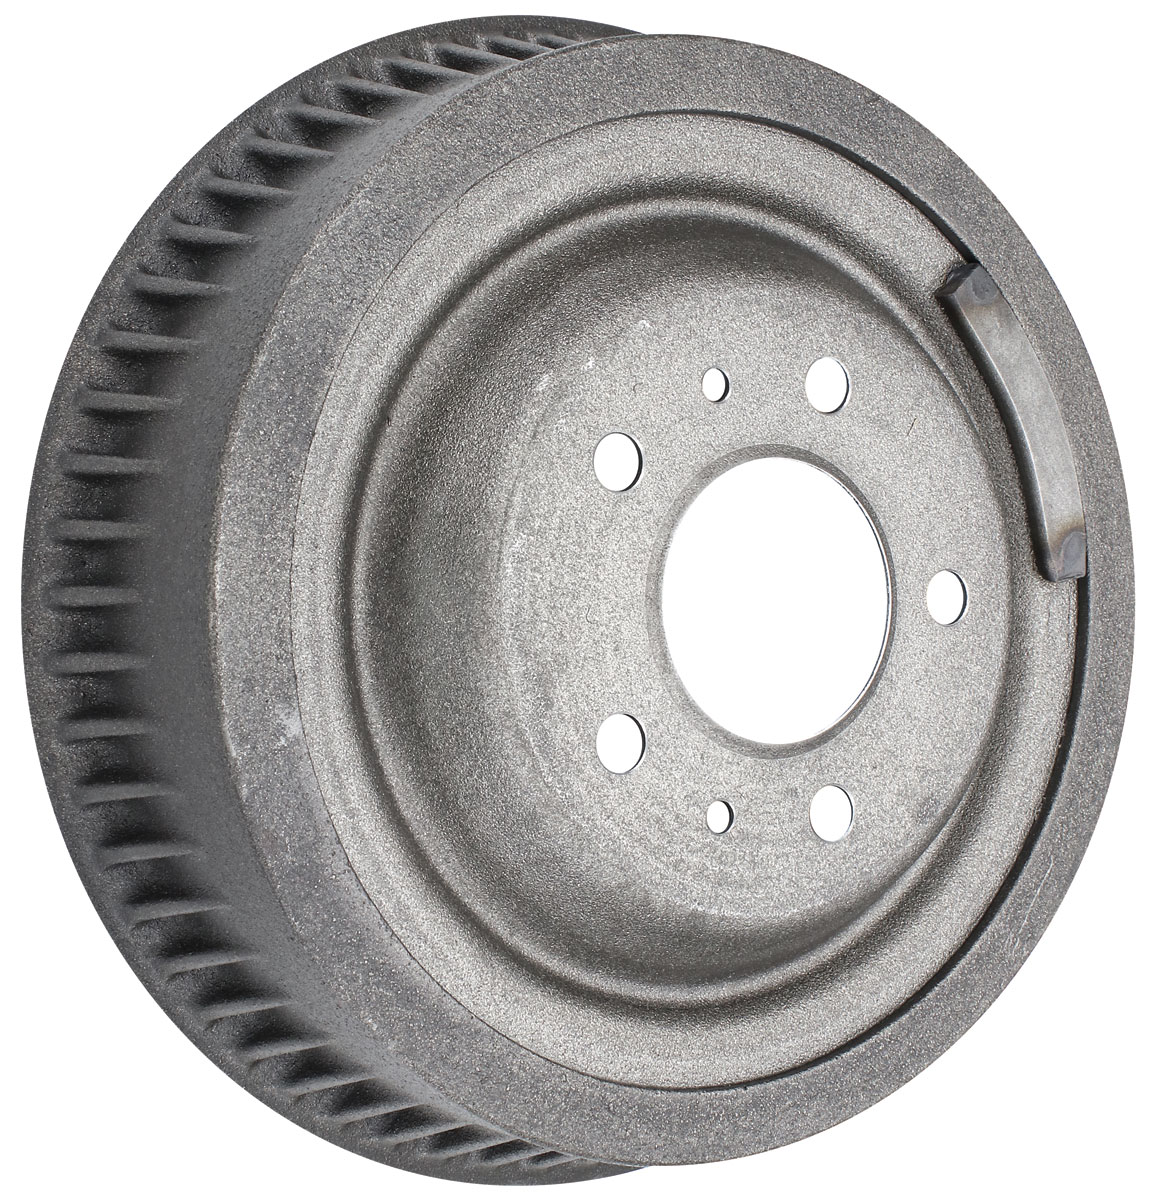 Brake Drum, 1959-76 Cadillac Exc. Commercial Chassis